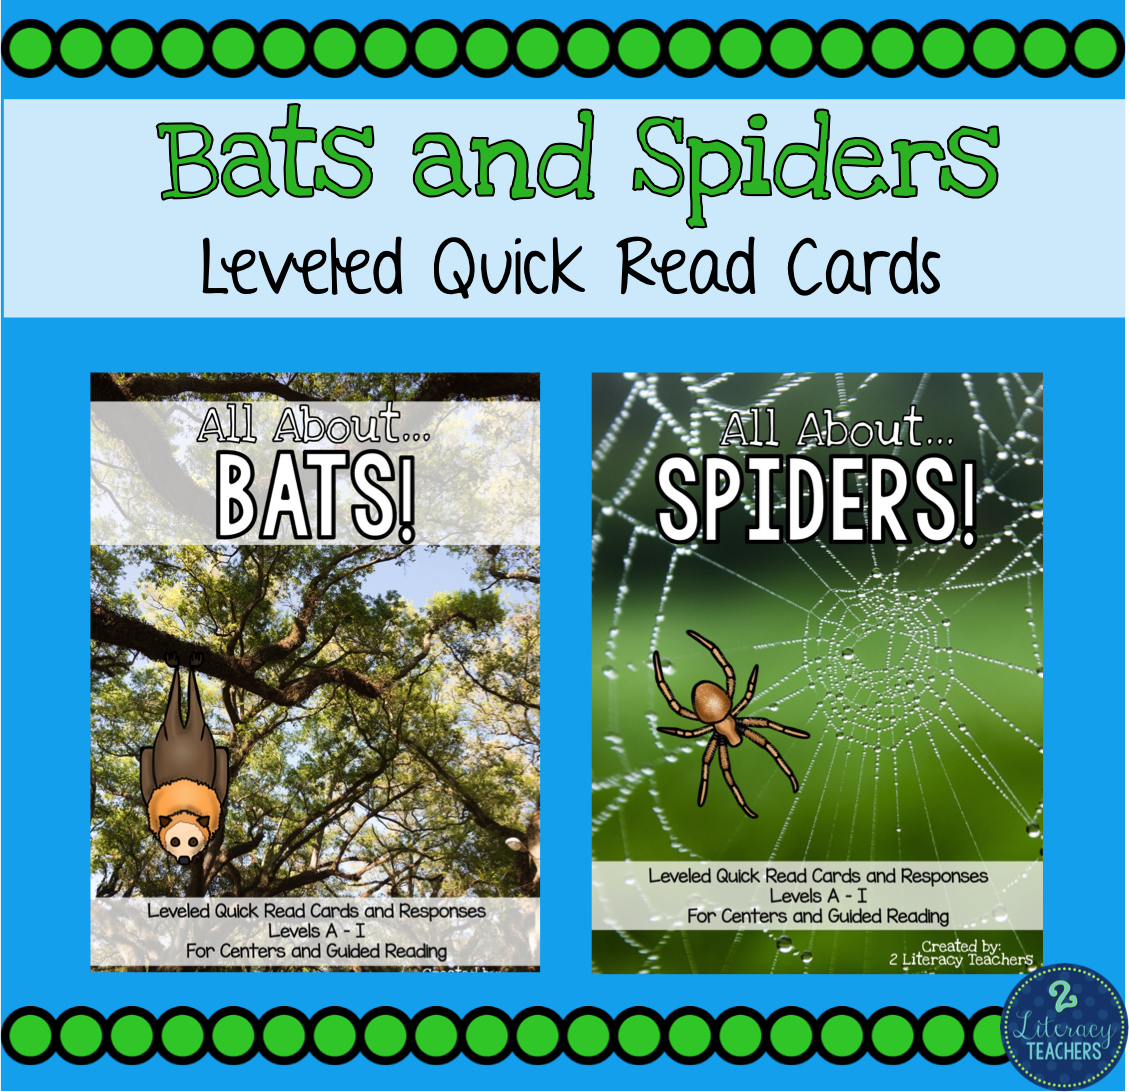 Bats and Spiders!!